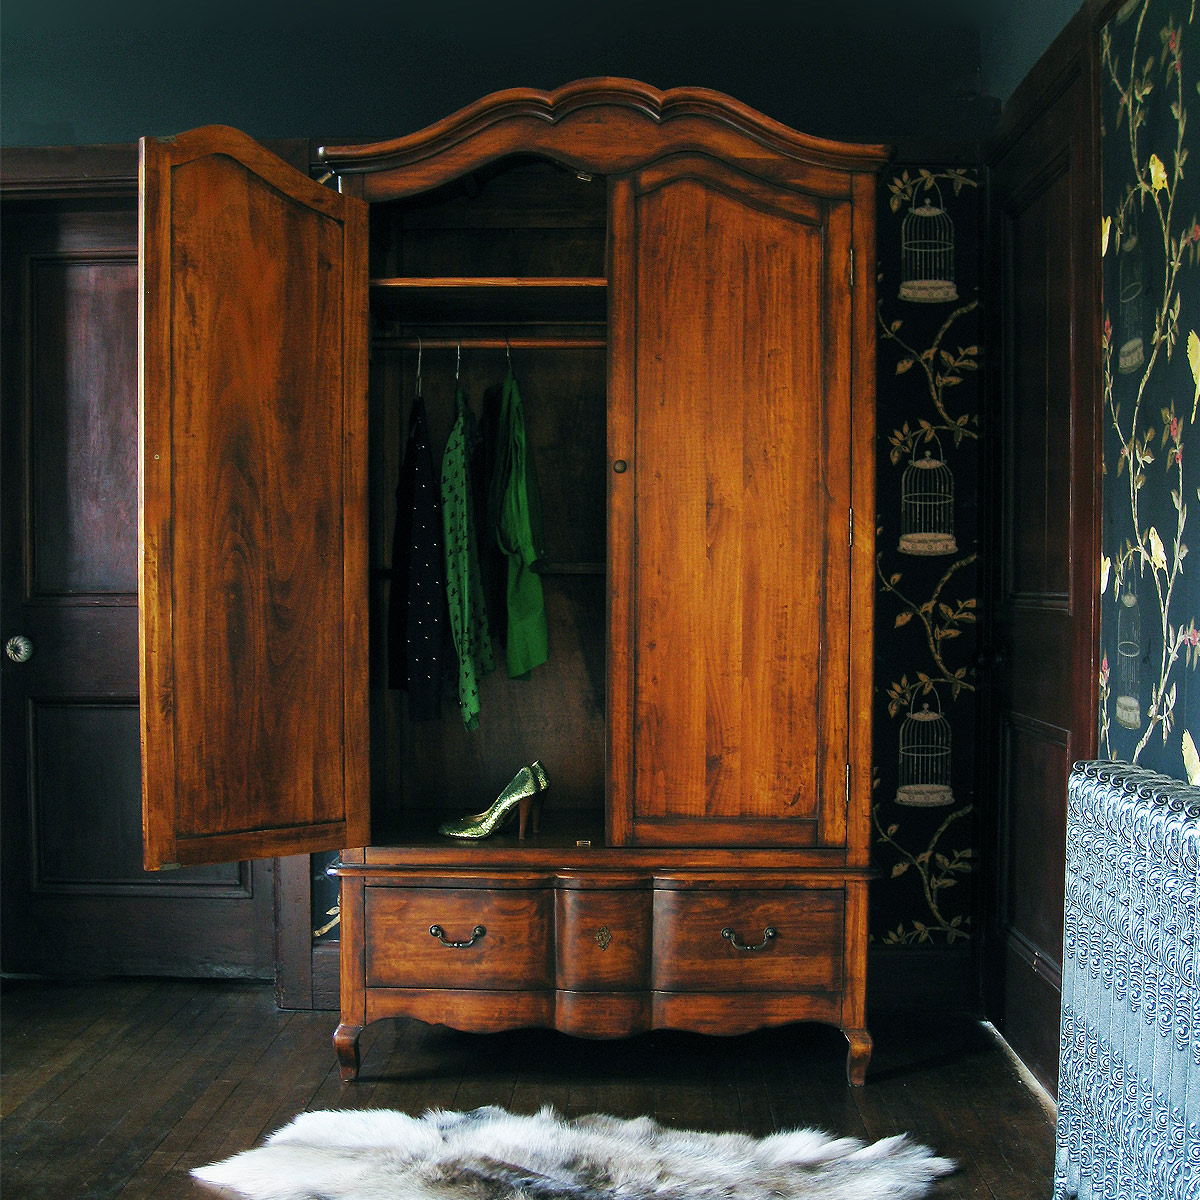 7 Vintage Furniture Trends To Fall In Love With! 3 vintage furniture trends 7 Vintage Furniture Trends To Fall In Love With! 7 Vintage Furniture Trends To Fall In Love With 3